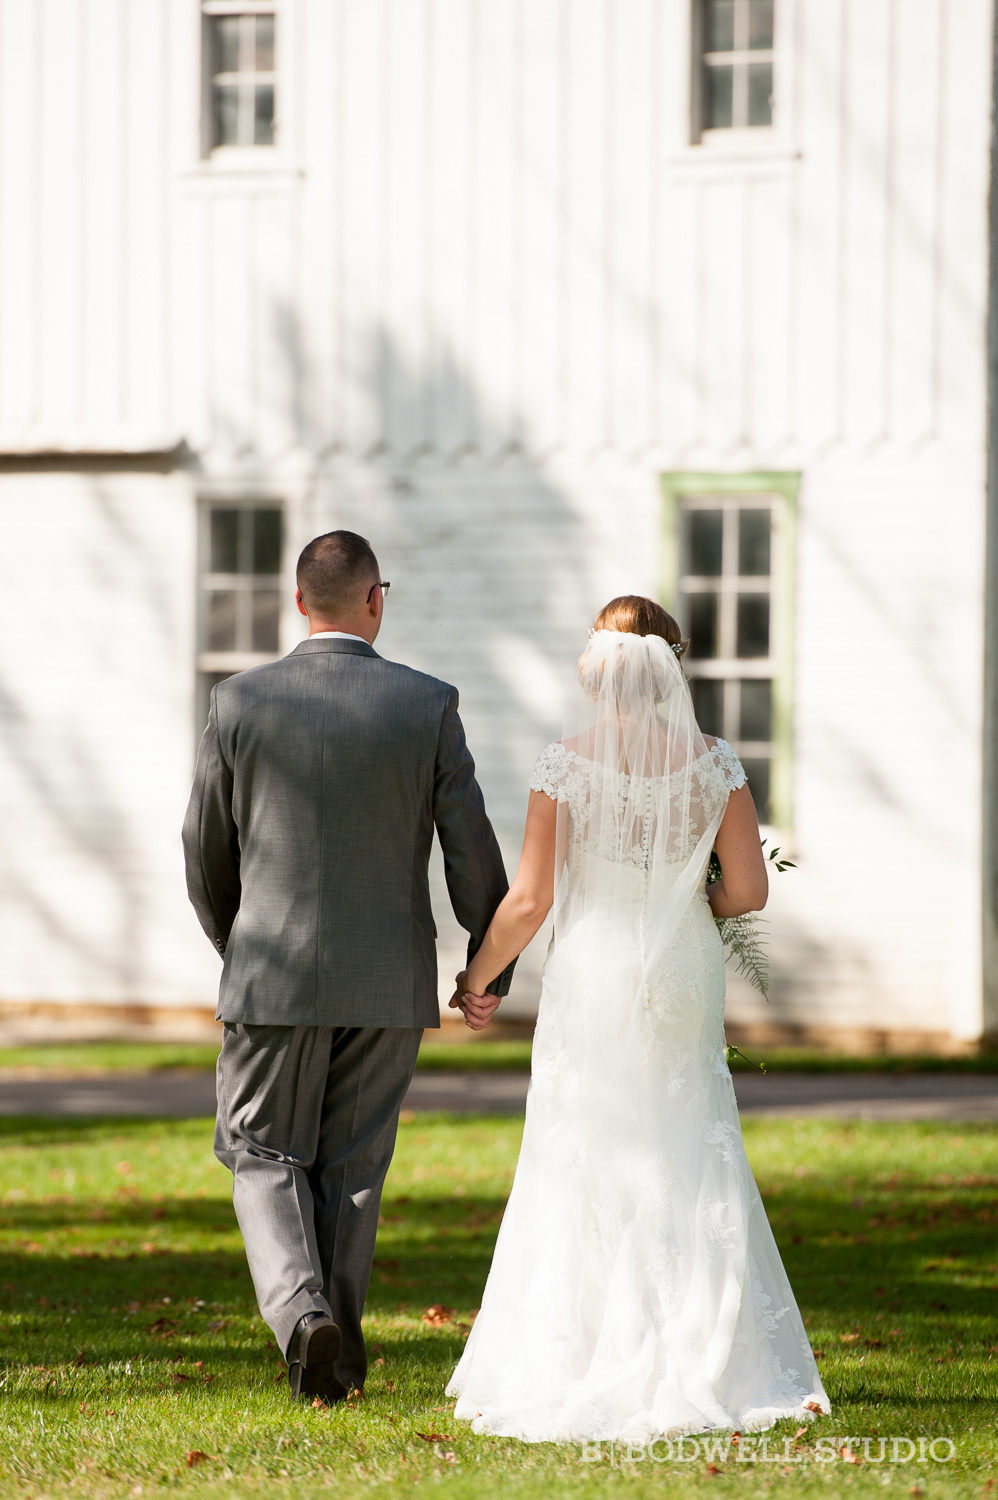 Dicks_Wedding_Blog_016.jpg